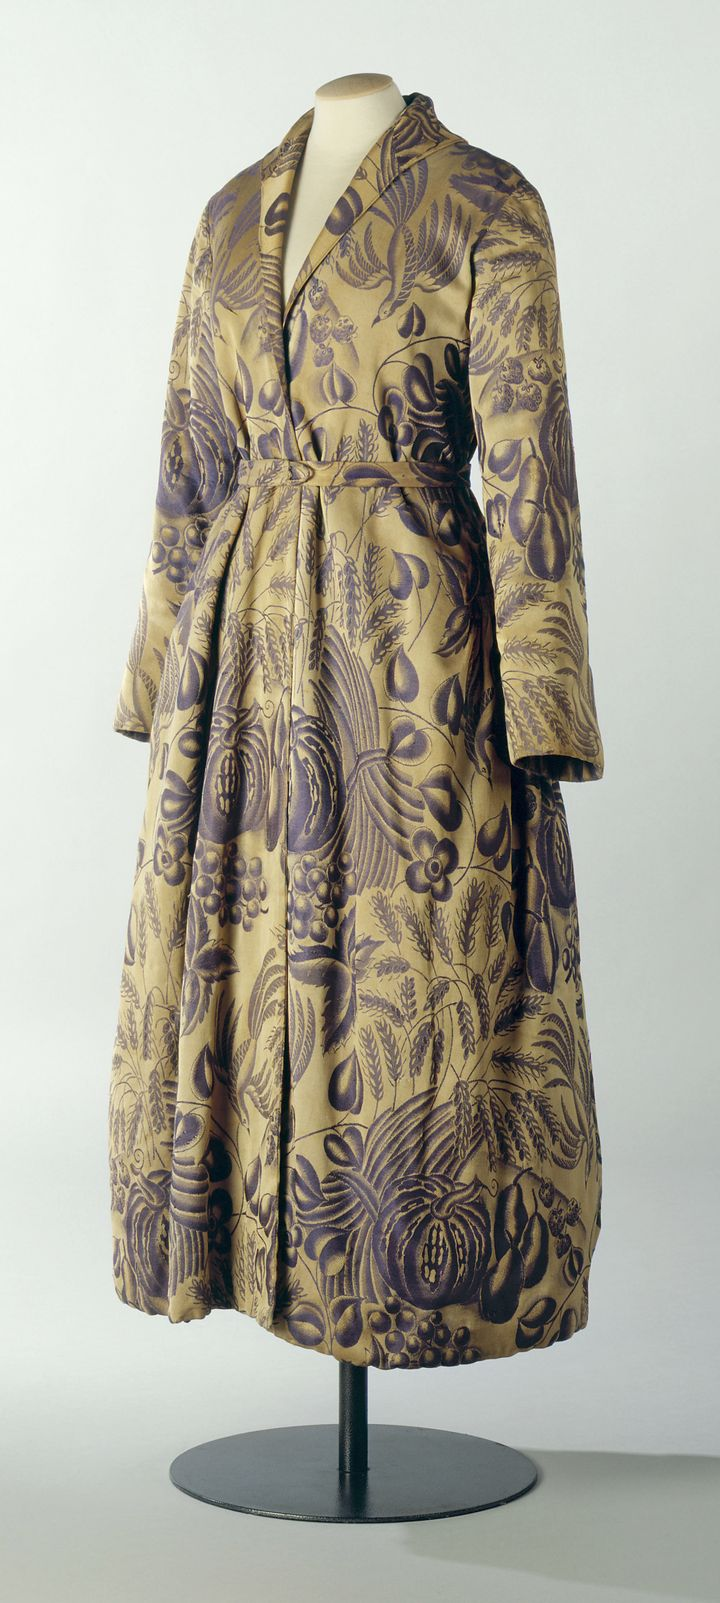 A dressing gown by Paul Poiret on display at the Musee de la Mode de la Ville de Paris at the Palais Galliera in Paris, late 20th century.